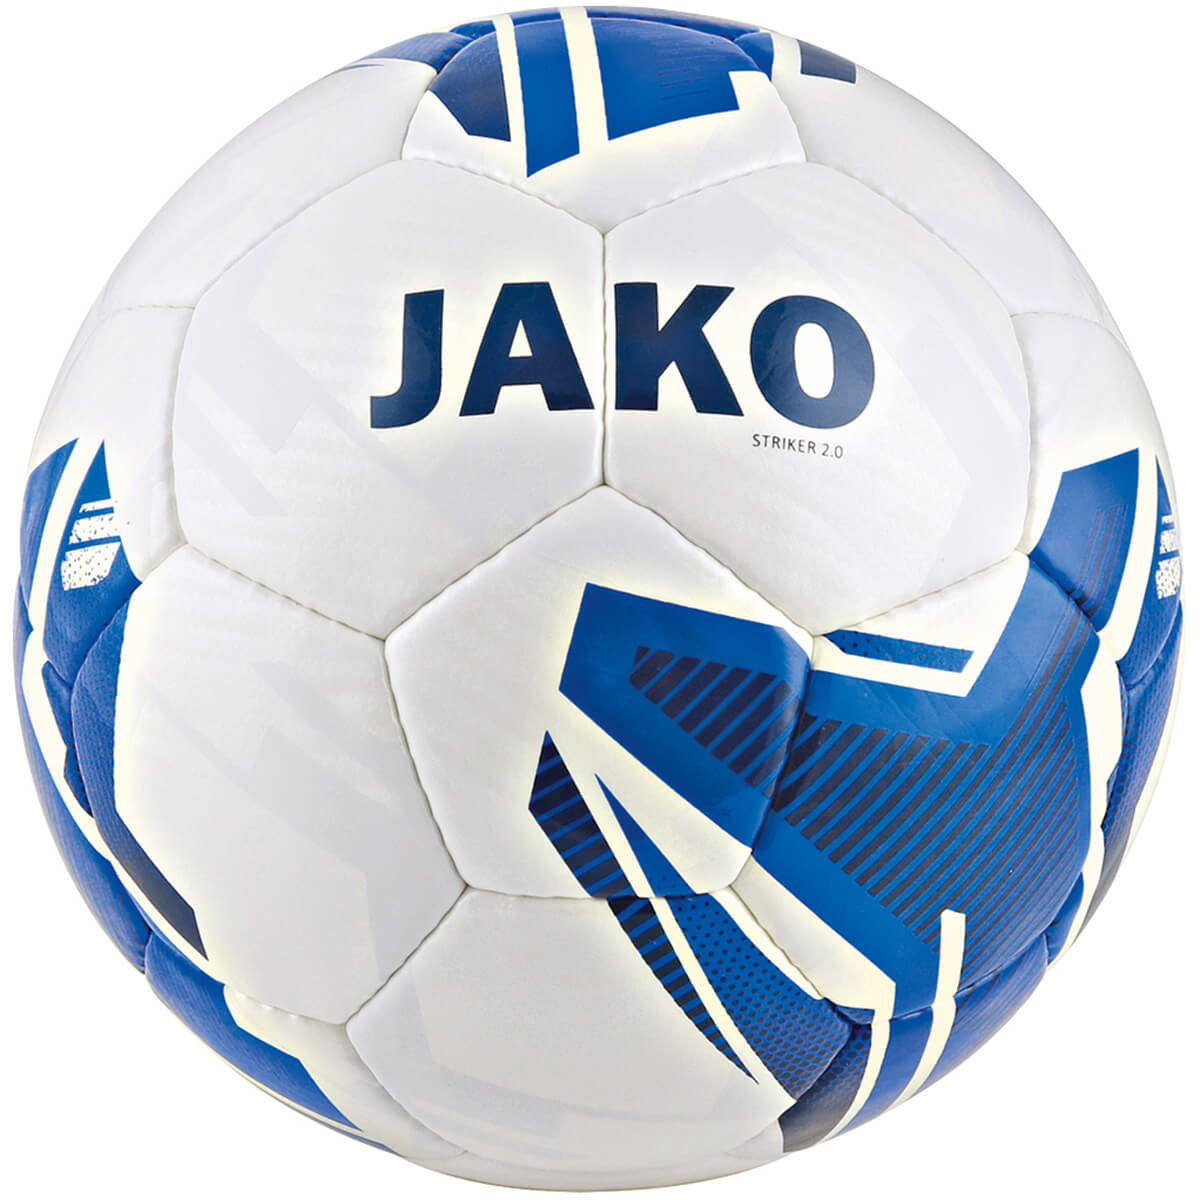 Trainingsball Striker 2.0 -  | Jako 2353